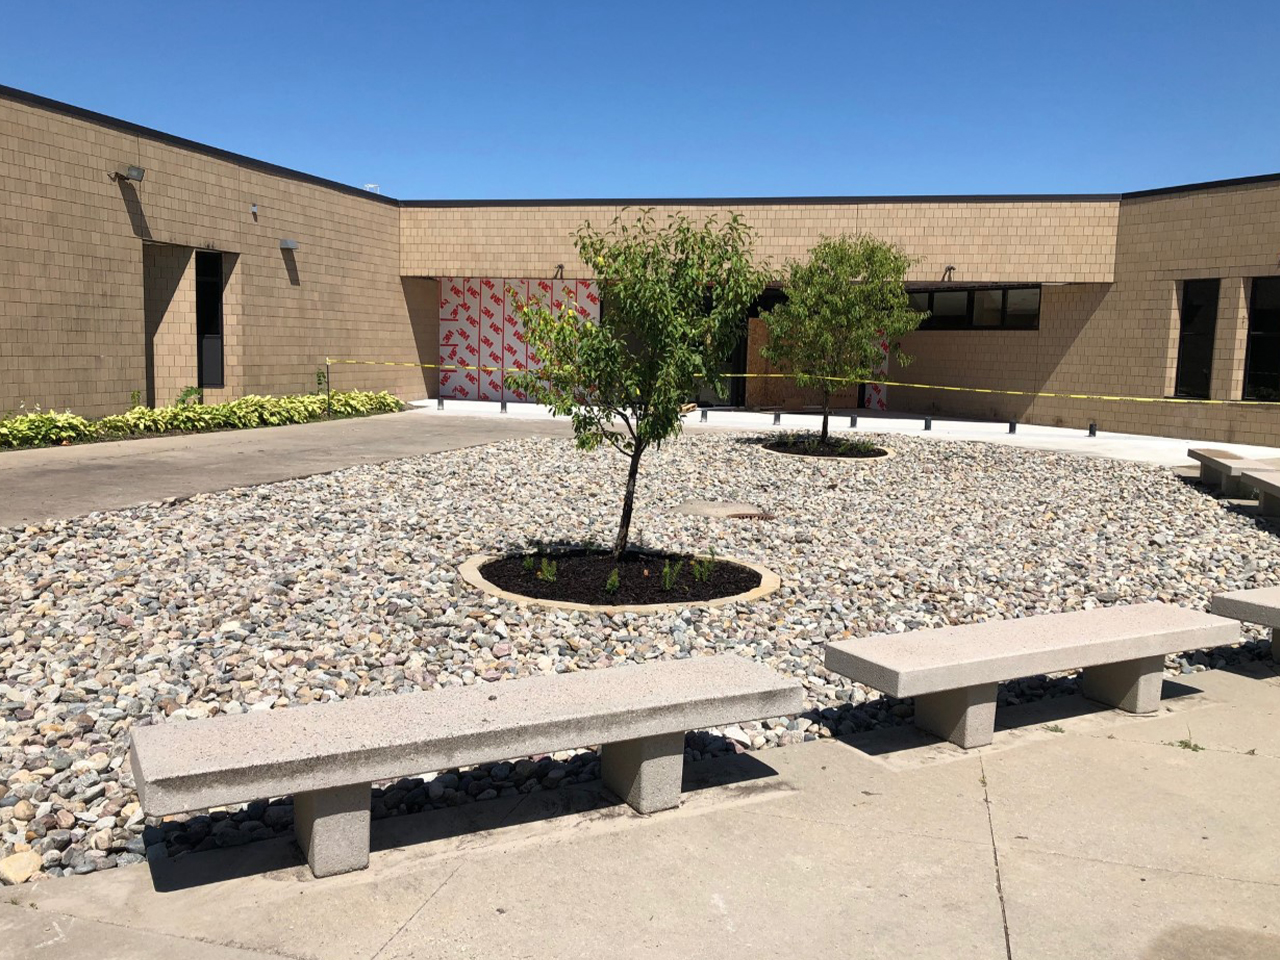 residential and commercial landscaping projects in des moines iowa